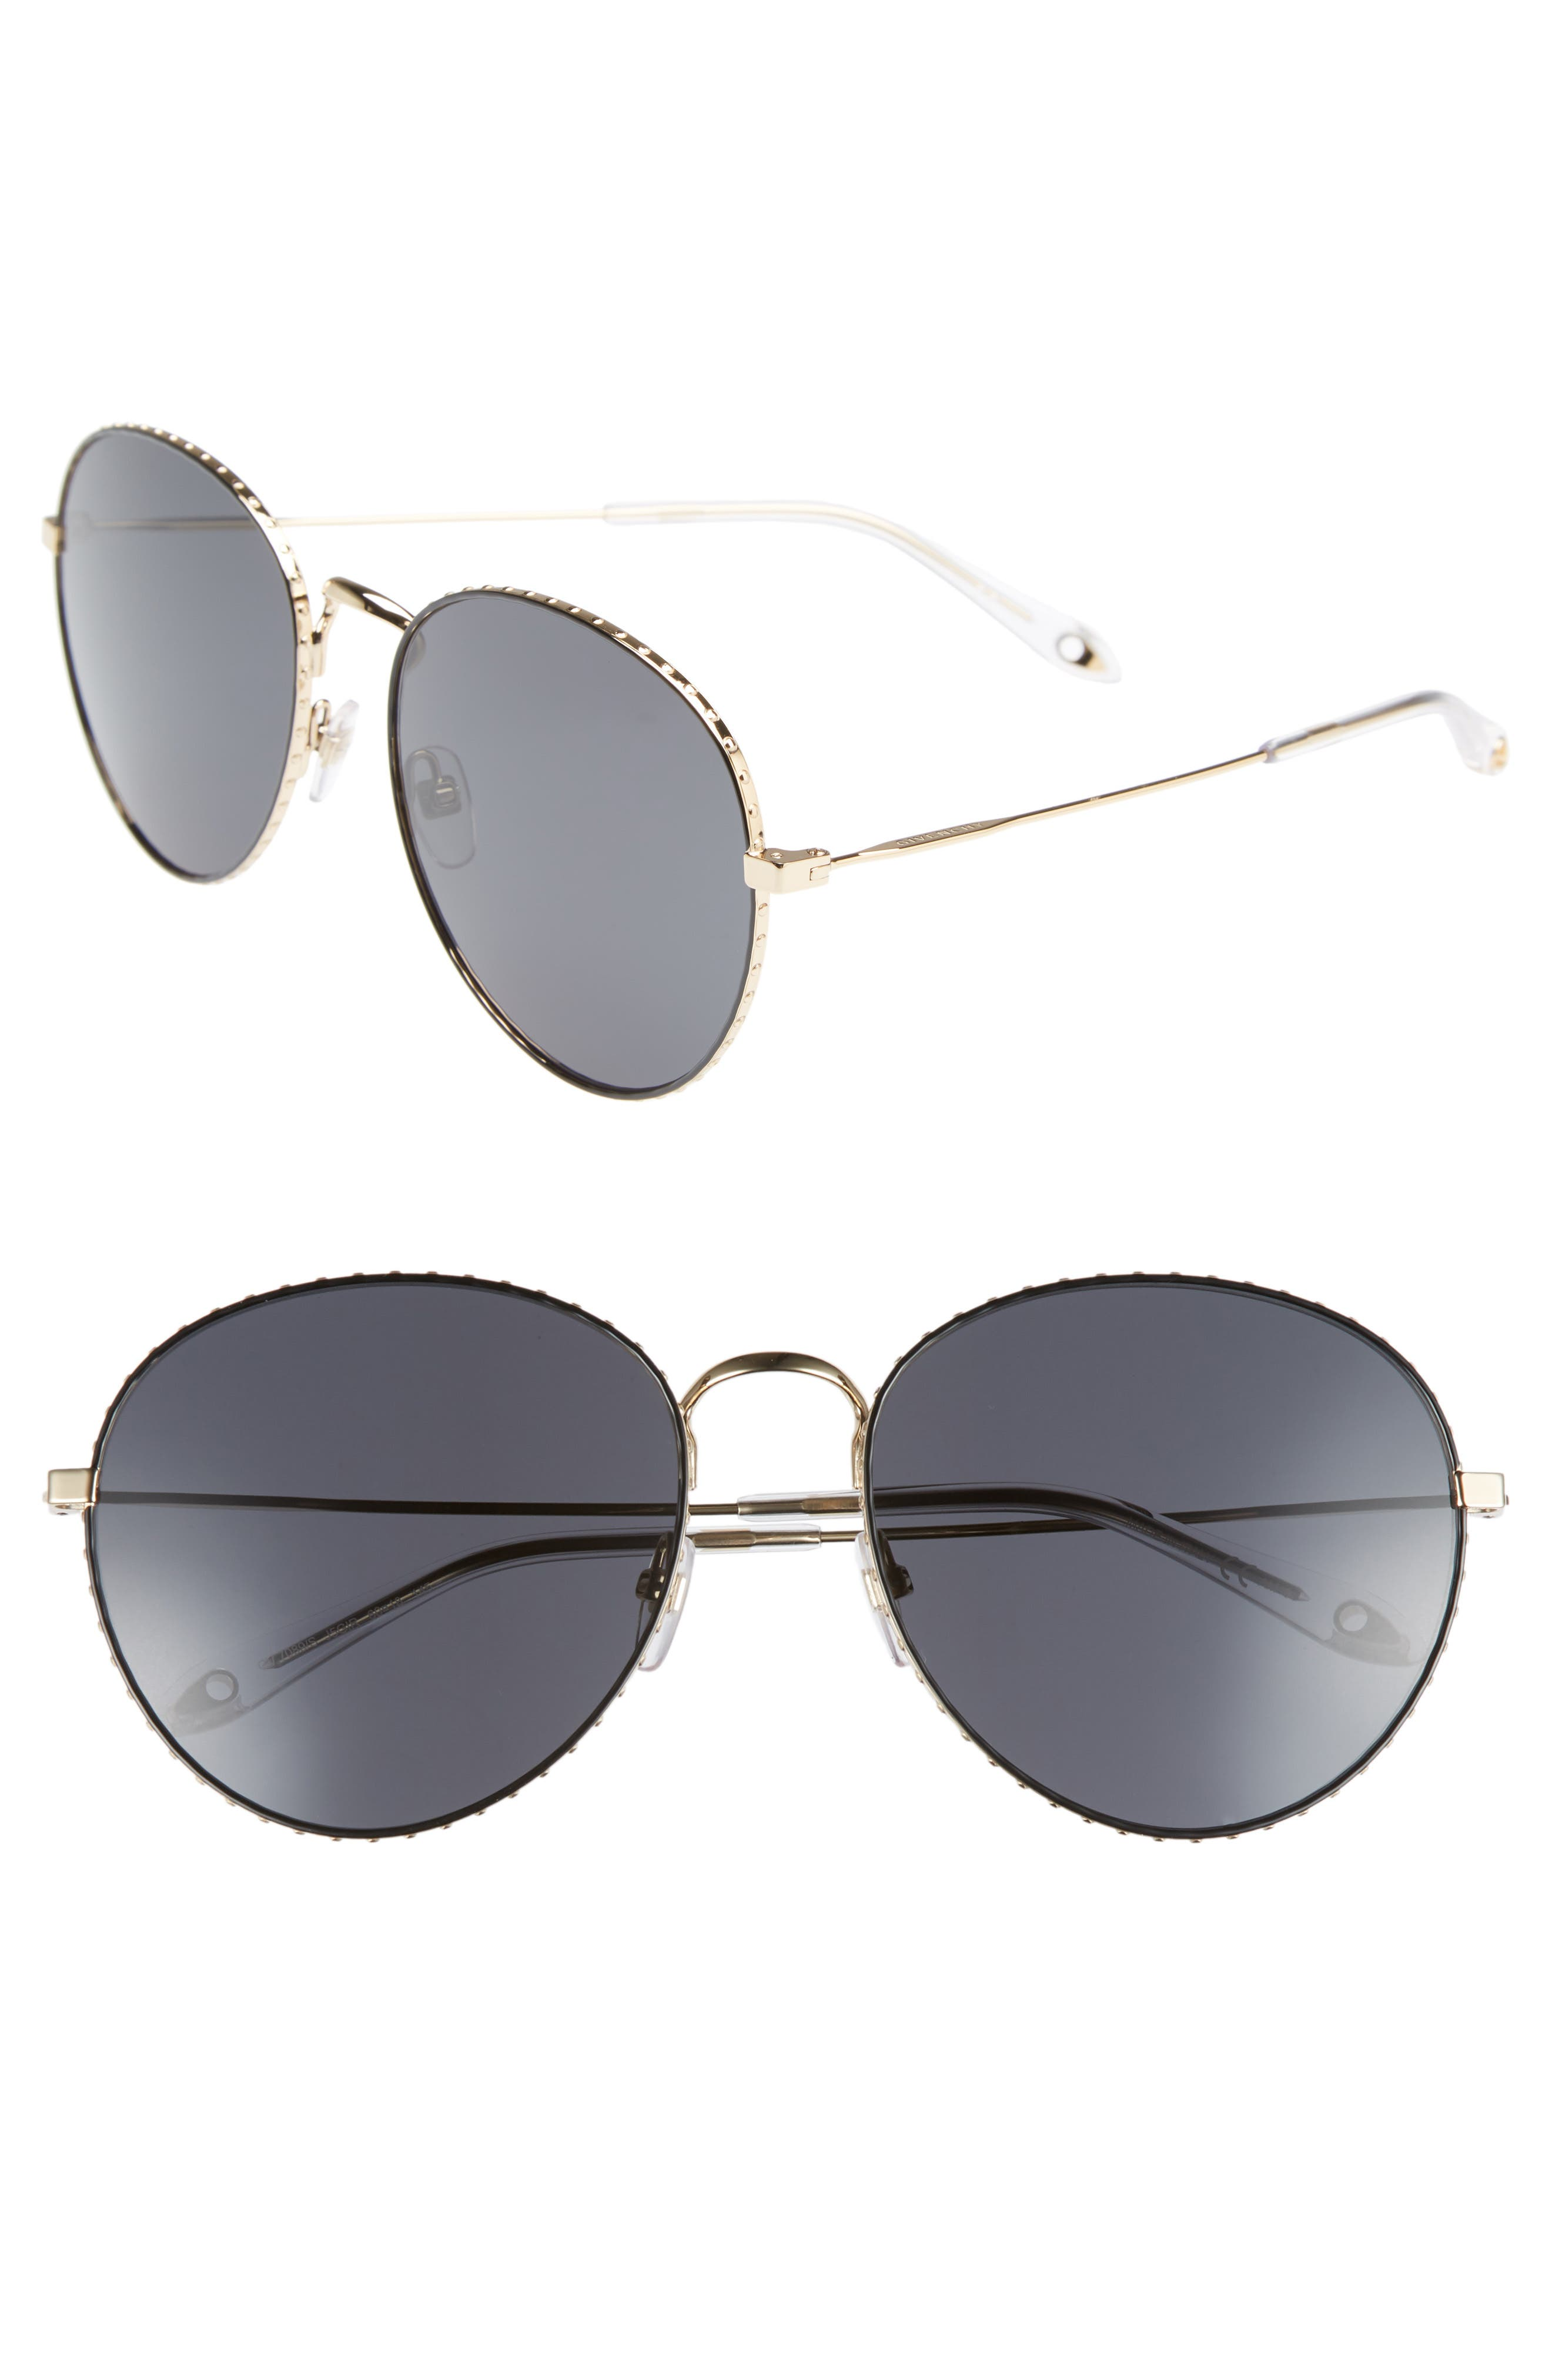 60mm Round Metal Sunglasses,                         Main,                         color, GOLD